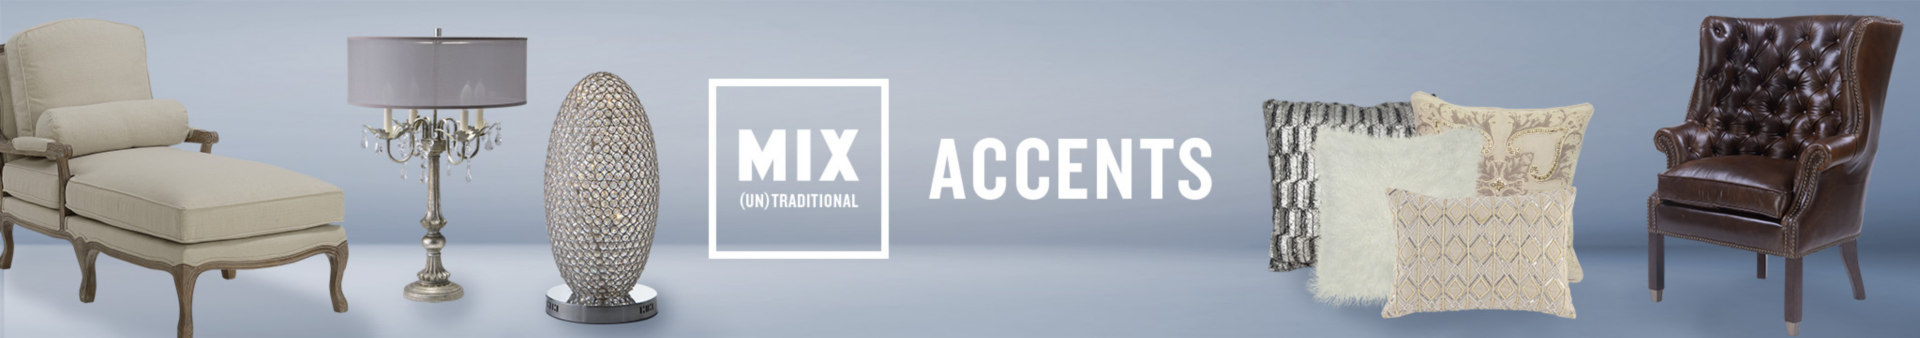 (un)traditional accents